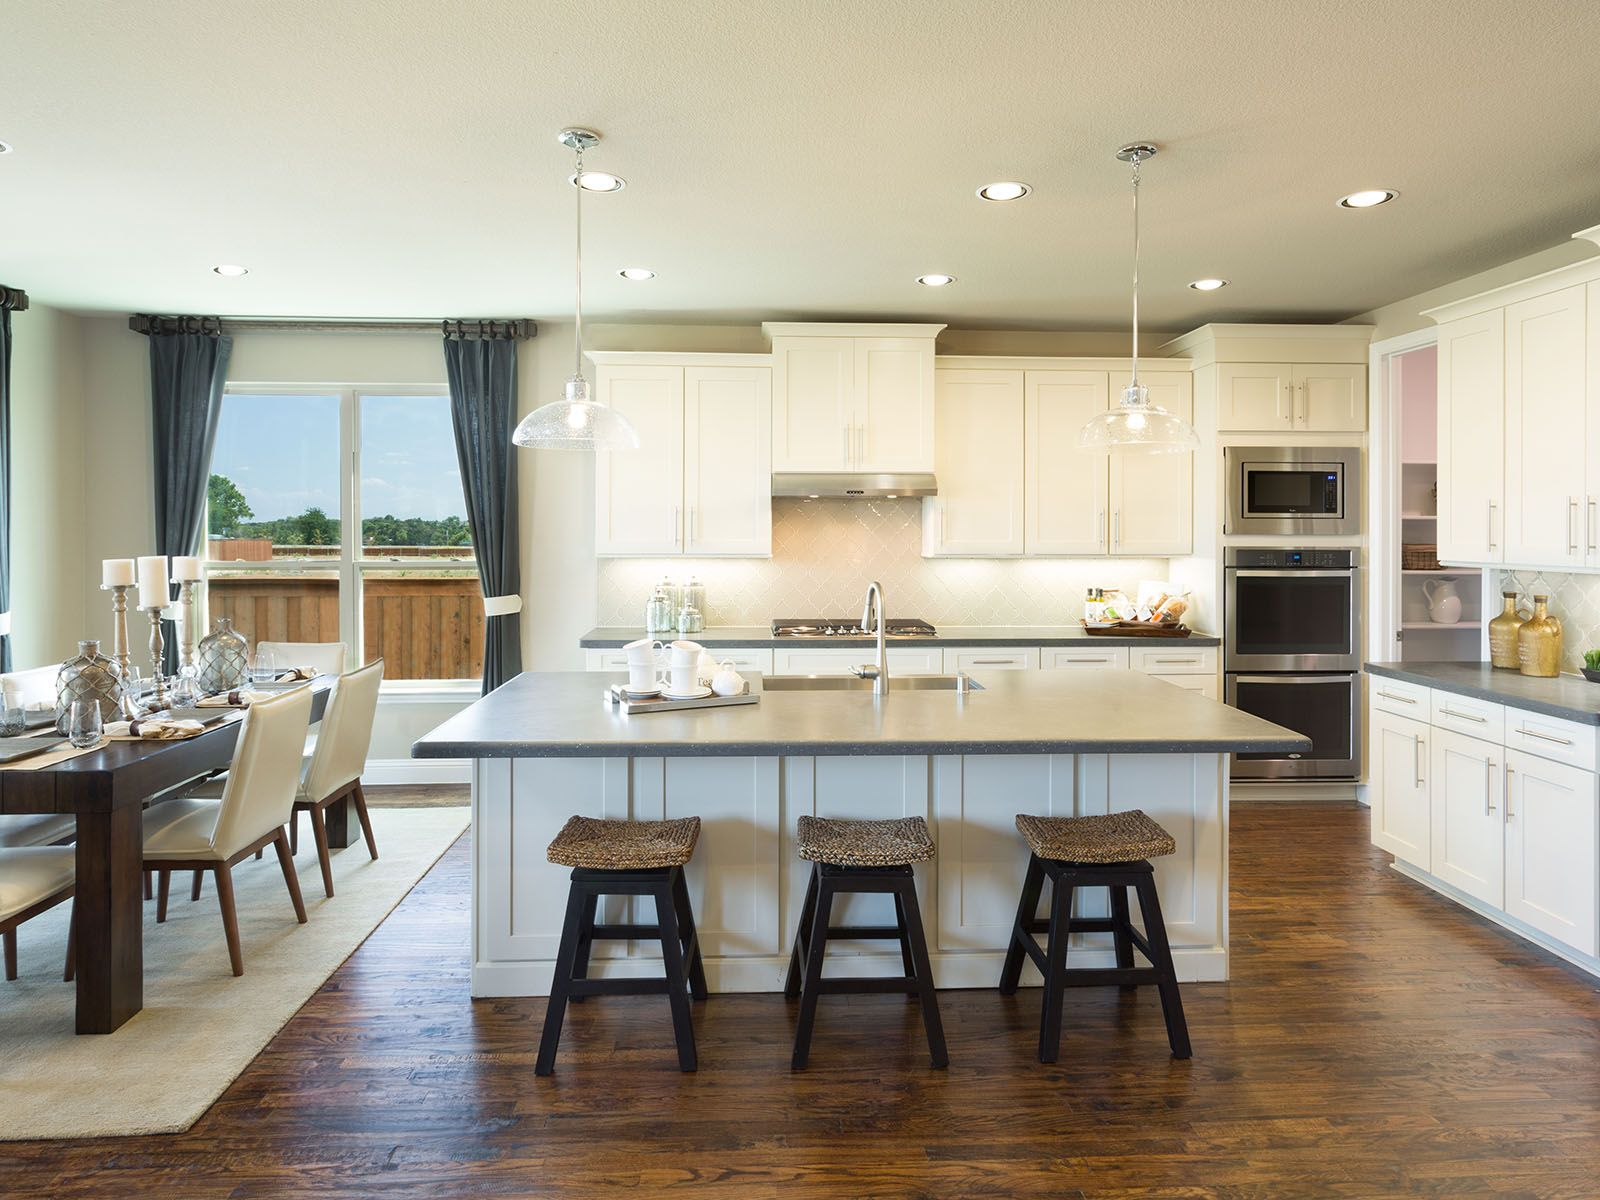 Inspiration in Wylie, TX, New Homes & Floor Plans by Meritage Homes